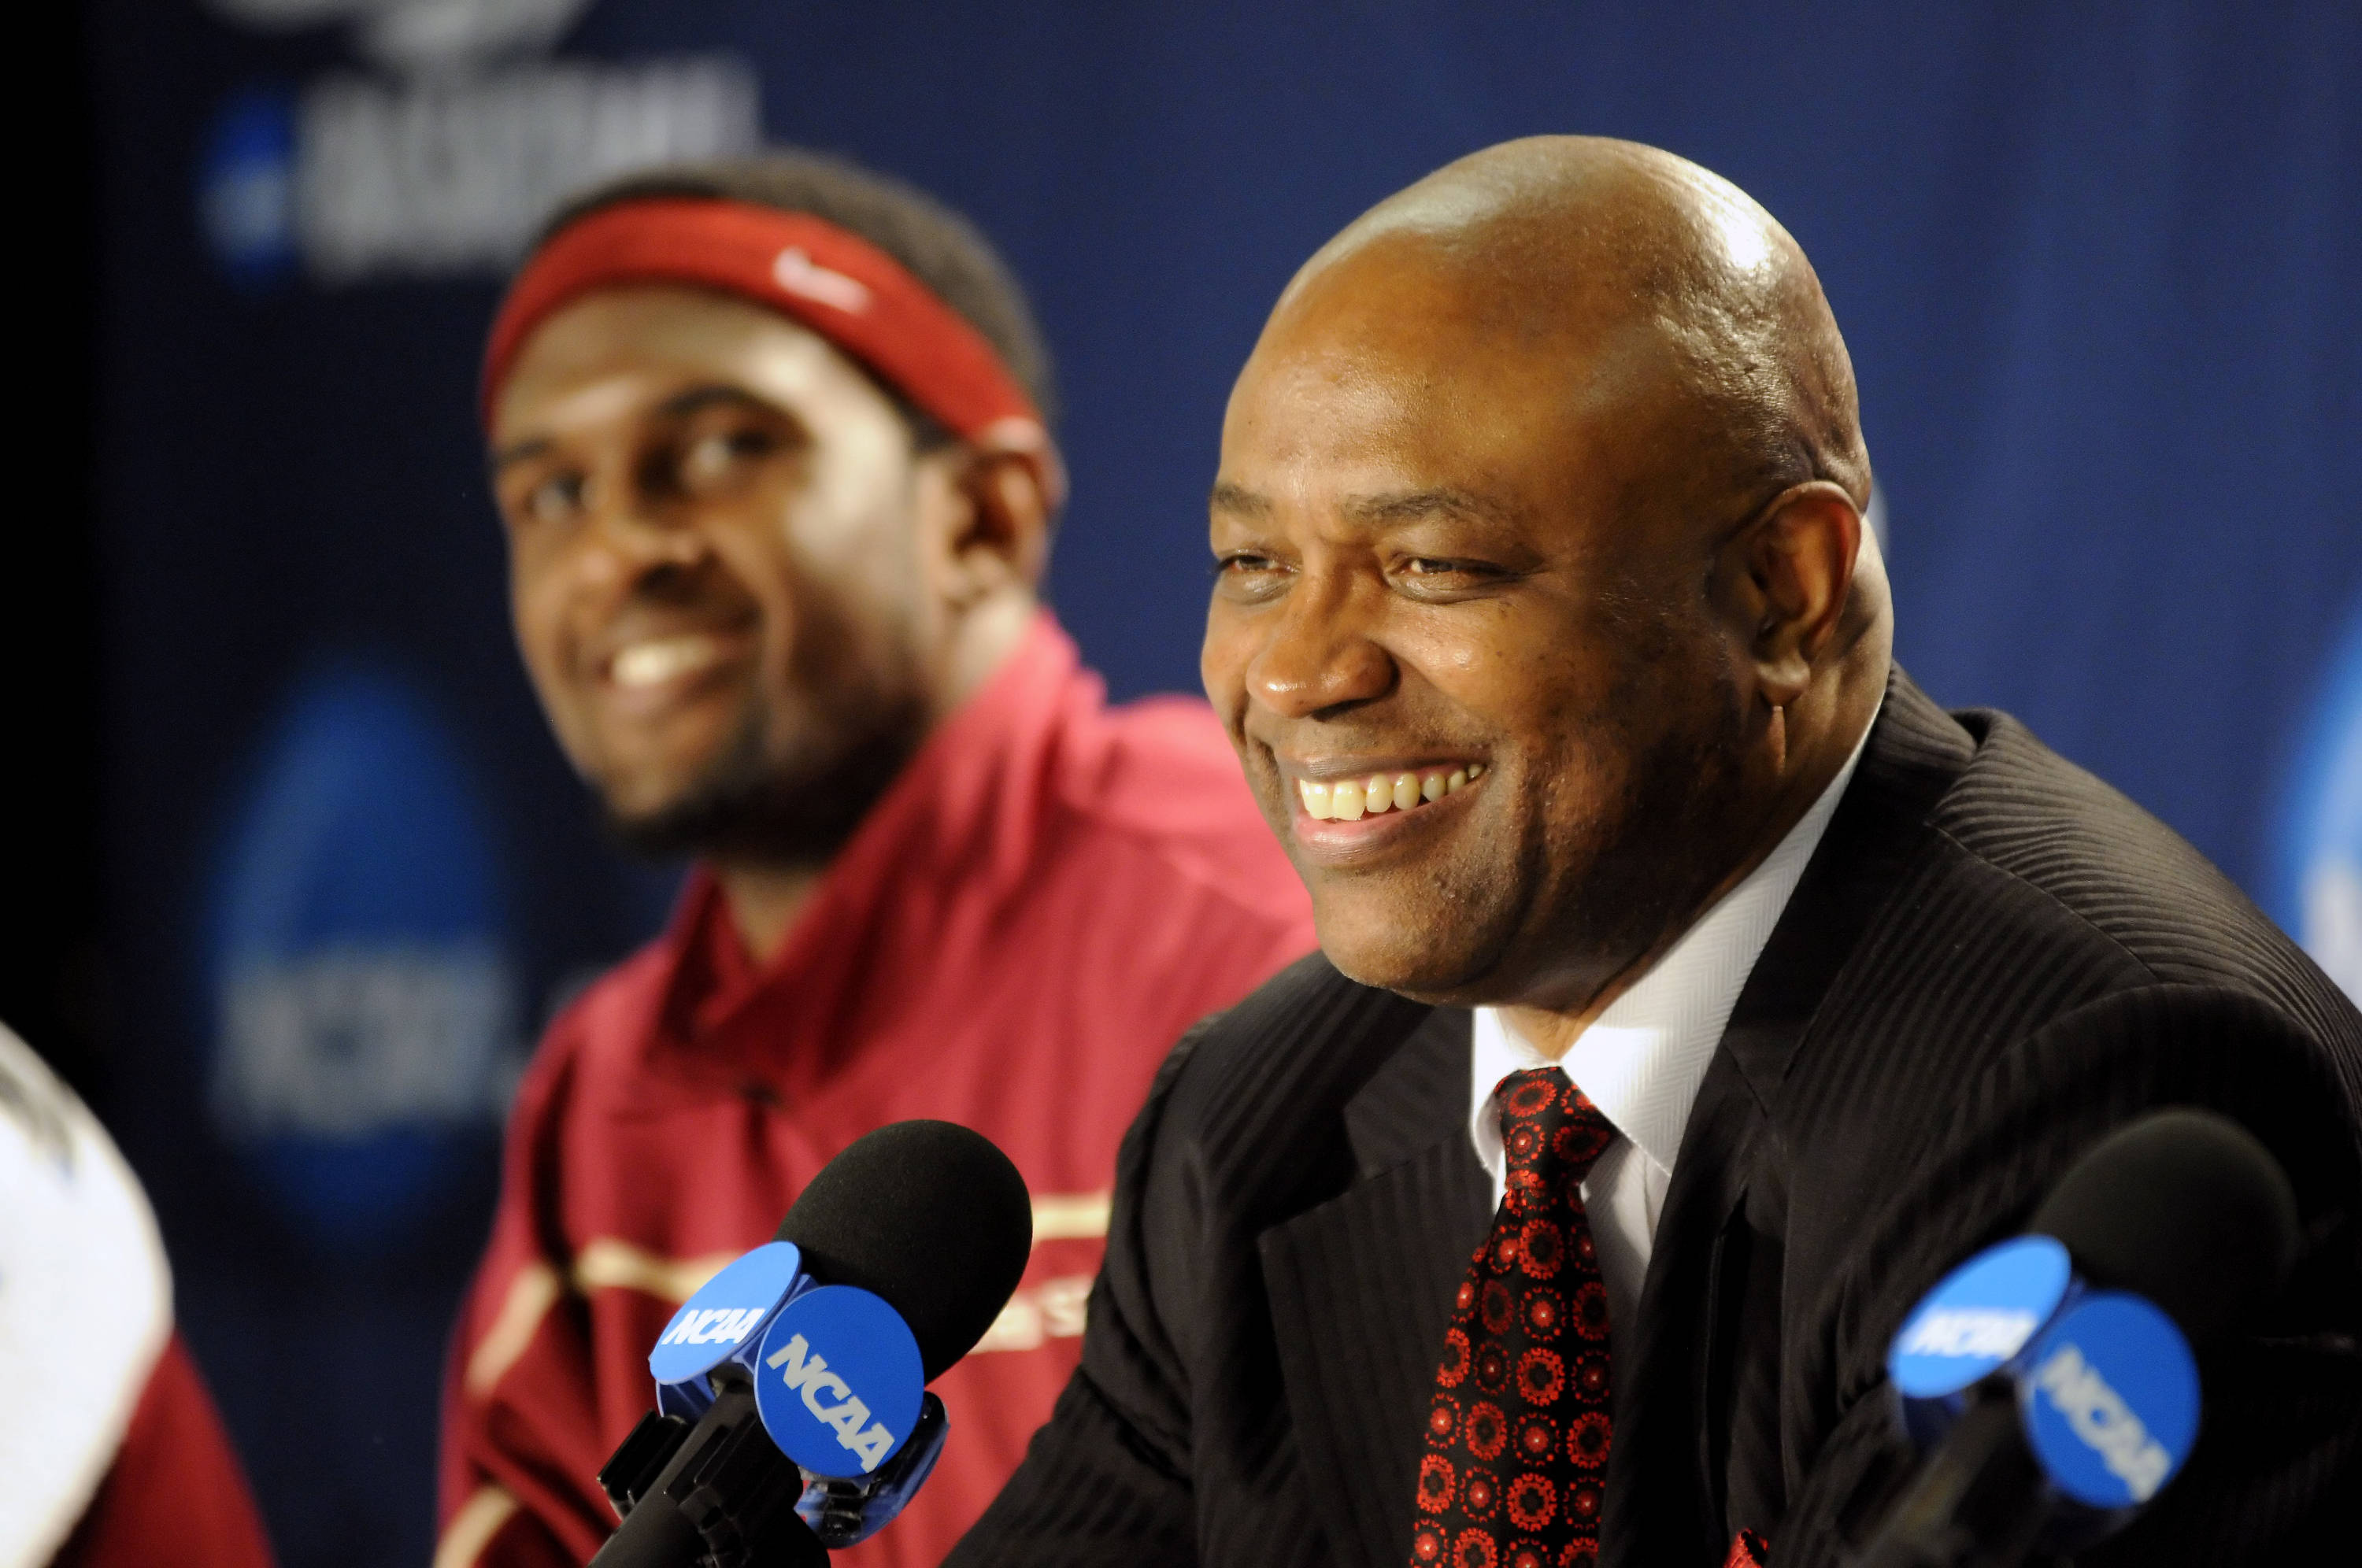 A smiling Leonard Hamilton answers questions at the post game press conference